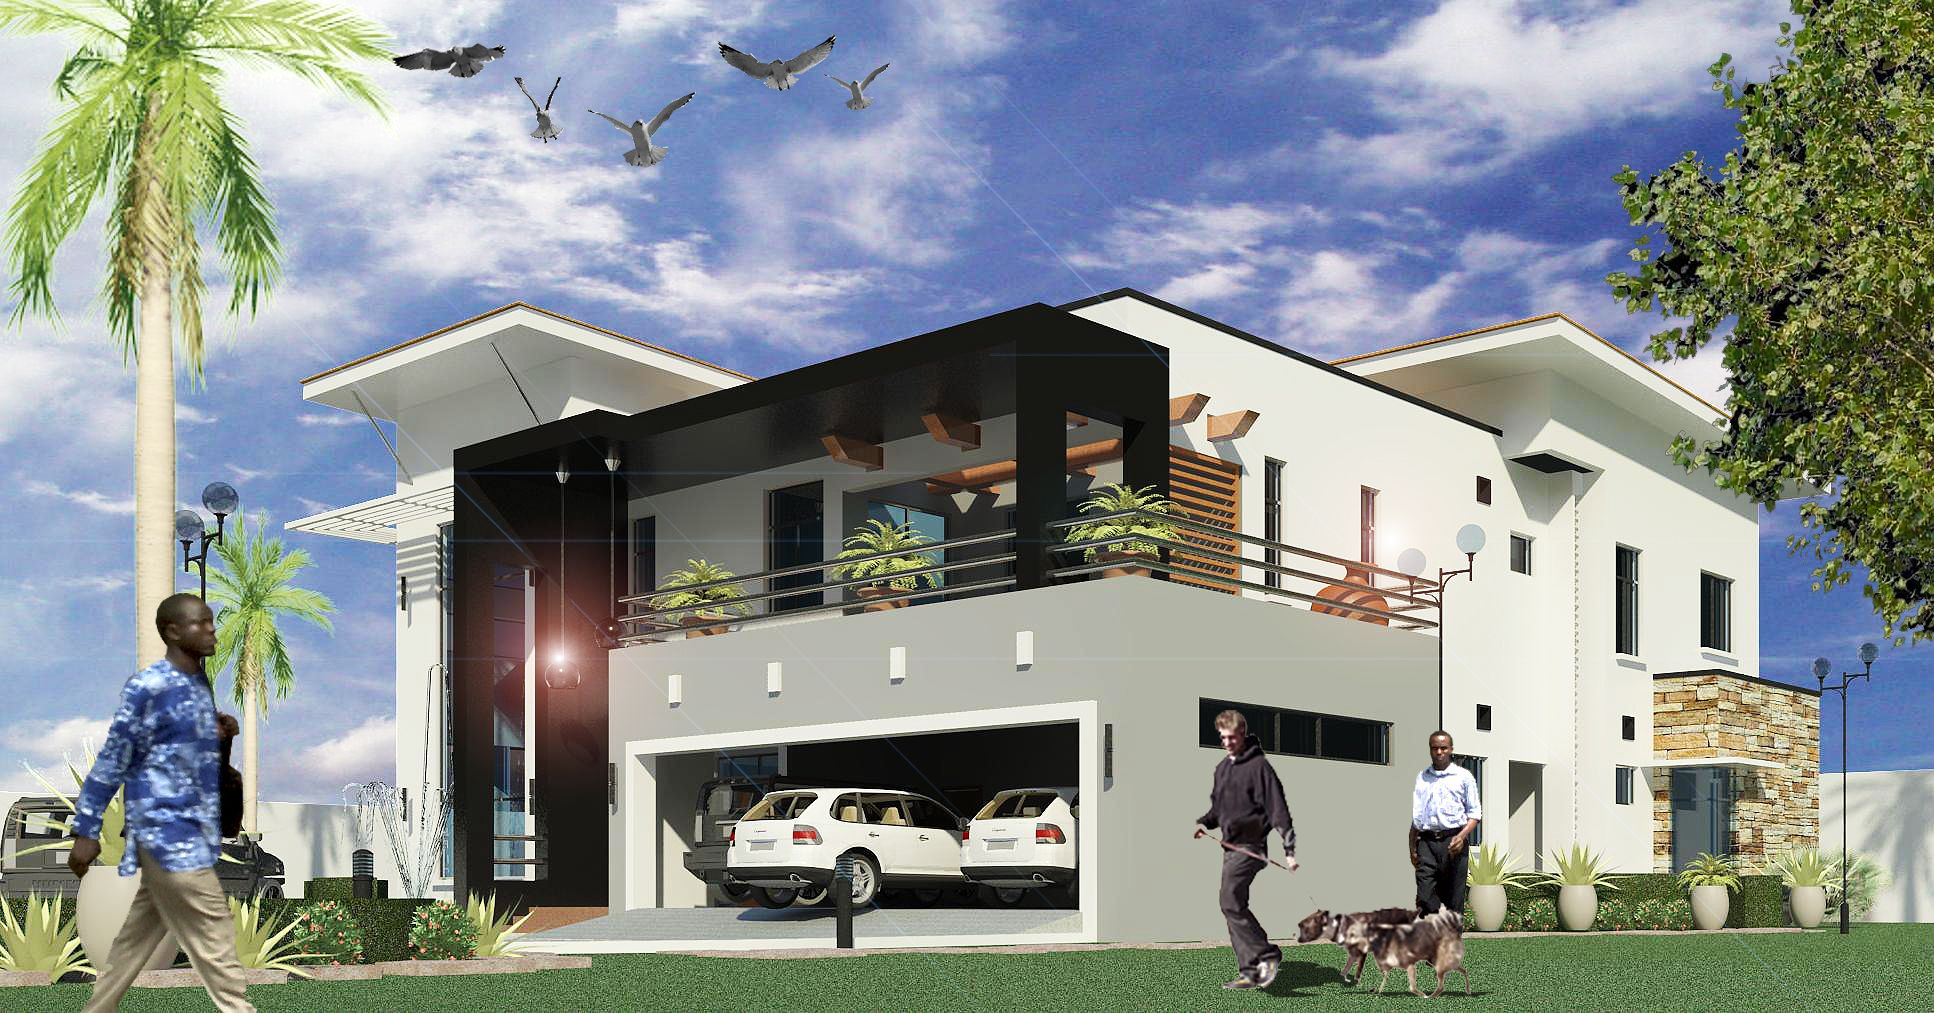 Villa, Guzape, Abuja - Design 3d | Residential Designs: Contemporary on front walkways to house, landscaping near house, frontrunners landscape designs house, landscape idea for the front of your house,